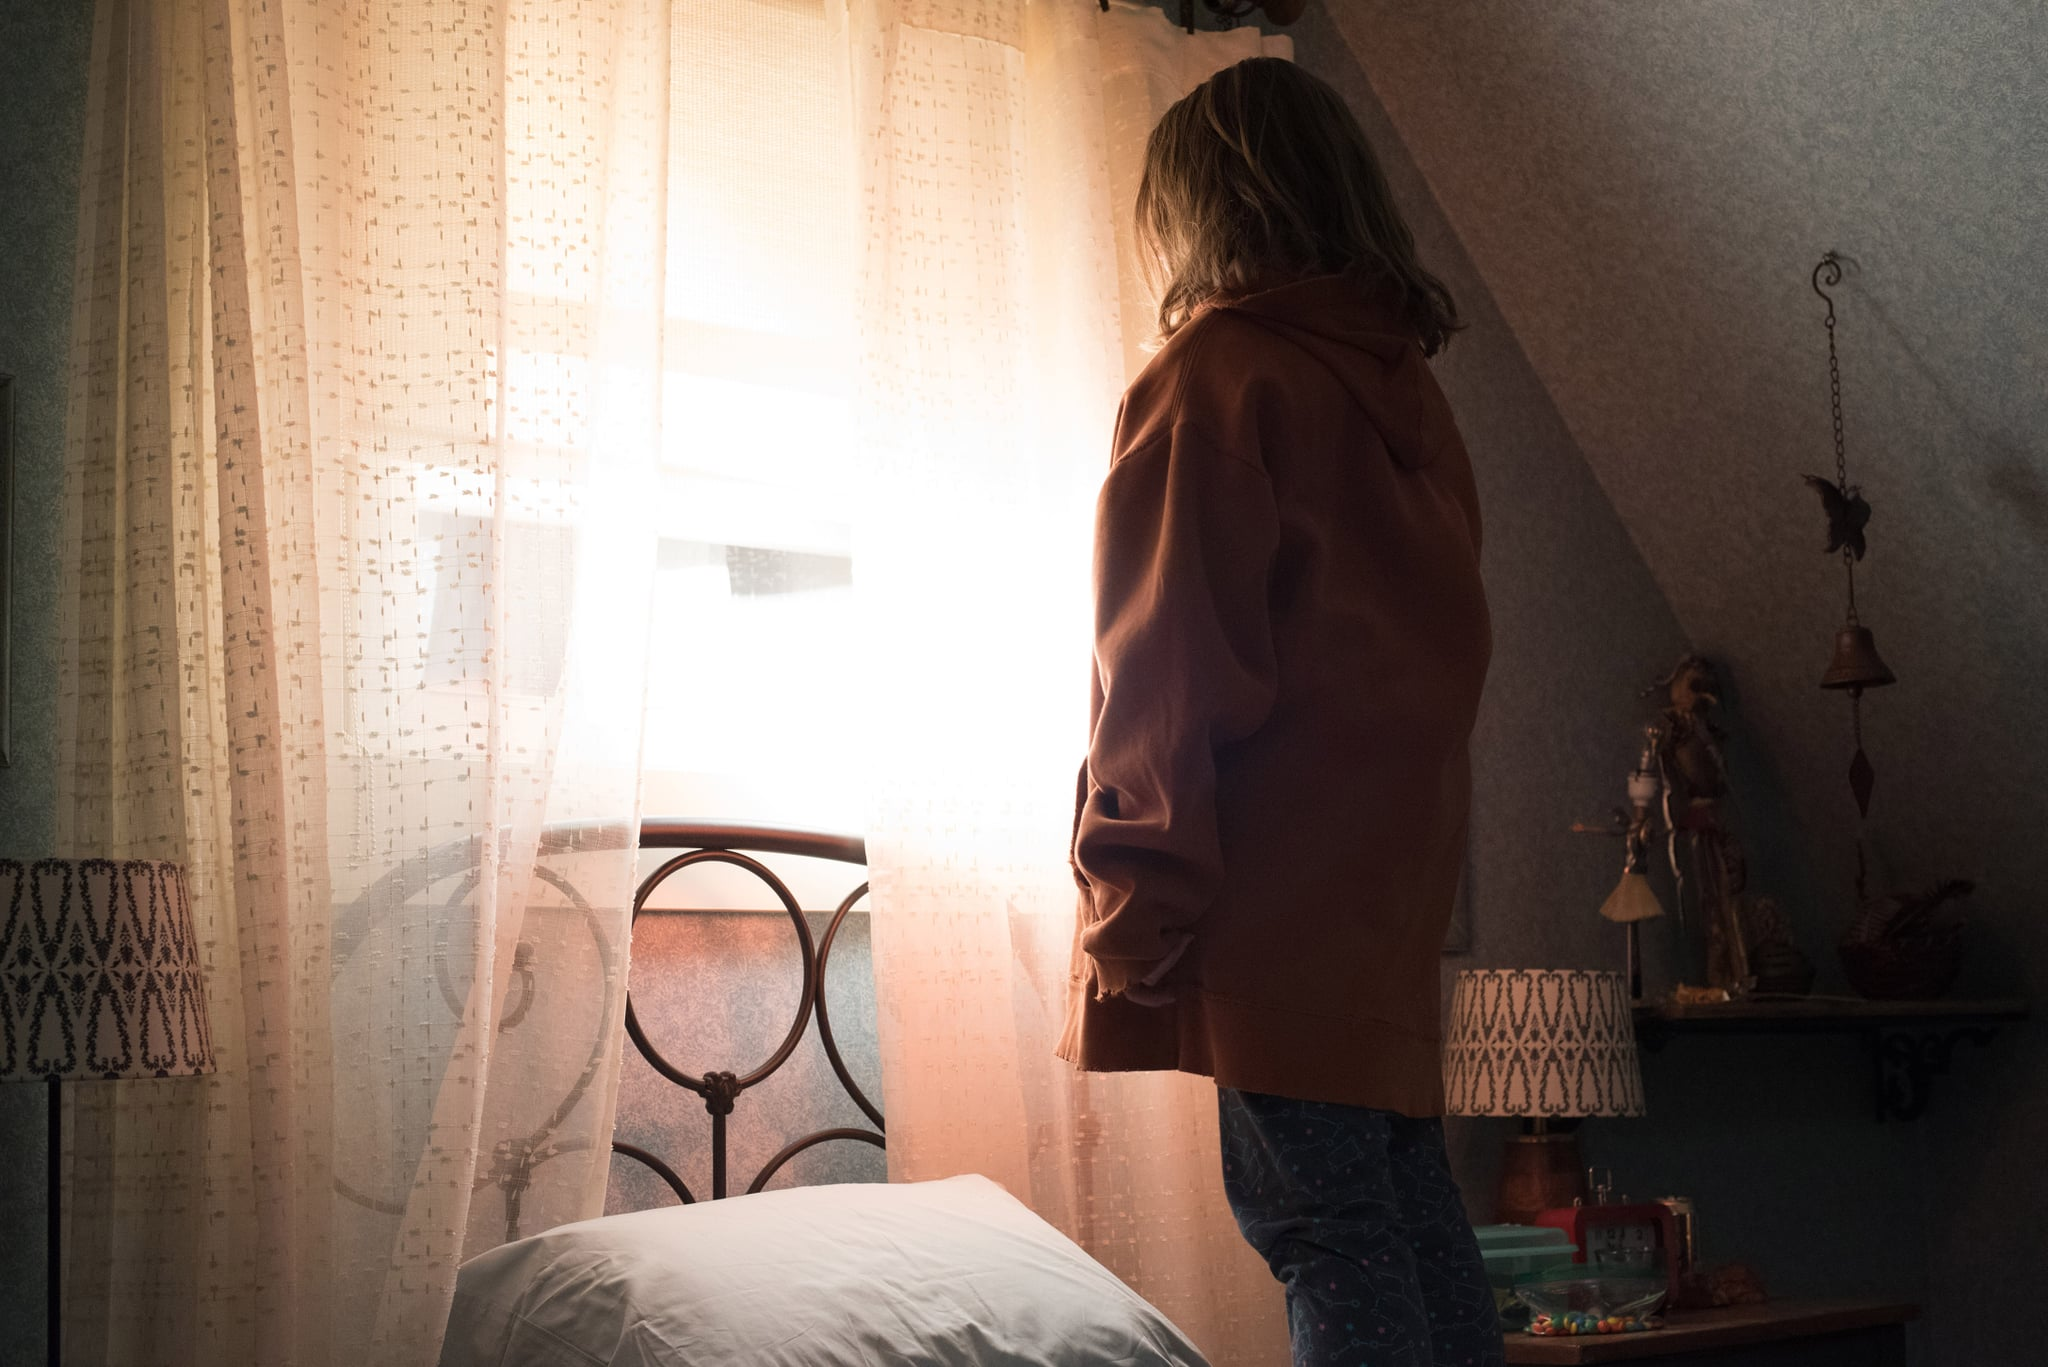 HEREDITARY, Milly Shapiro, 2018. ph: Reid Chavis / A24 /Courtesy Everett Collection